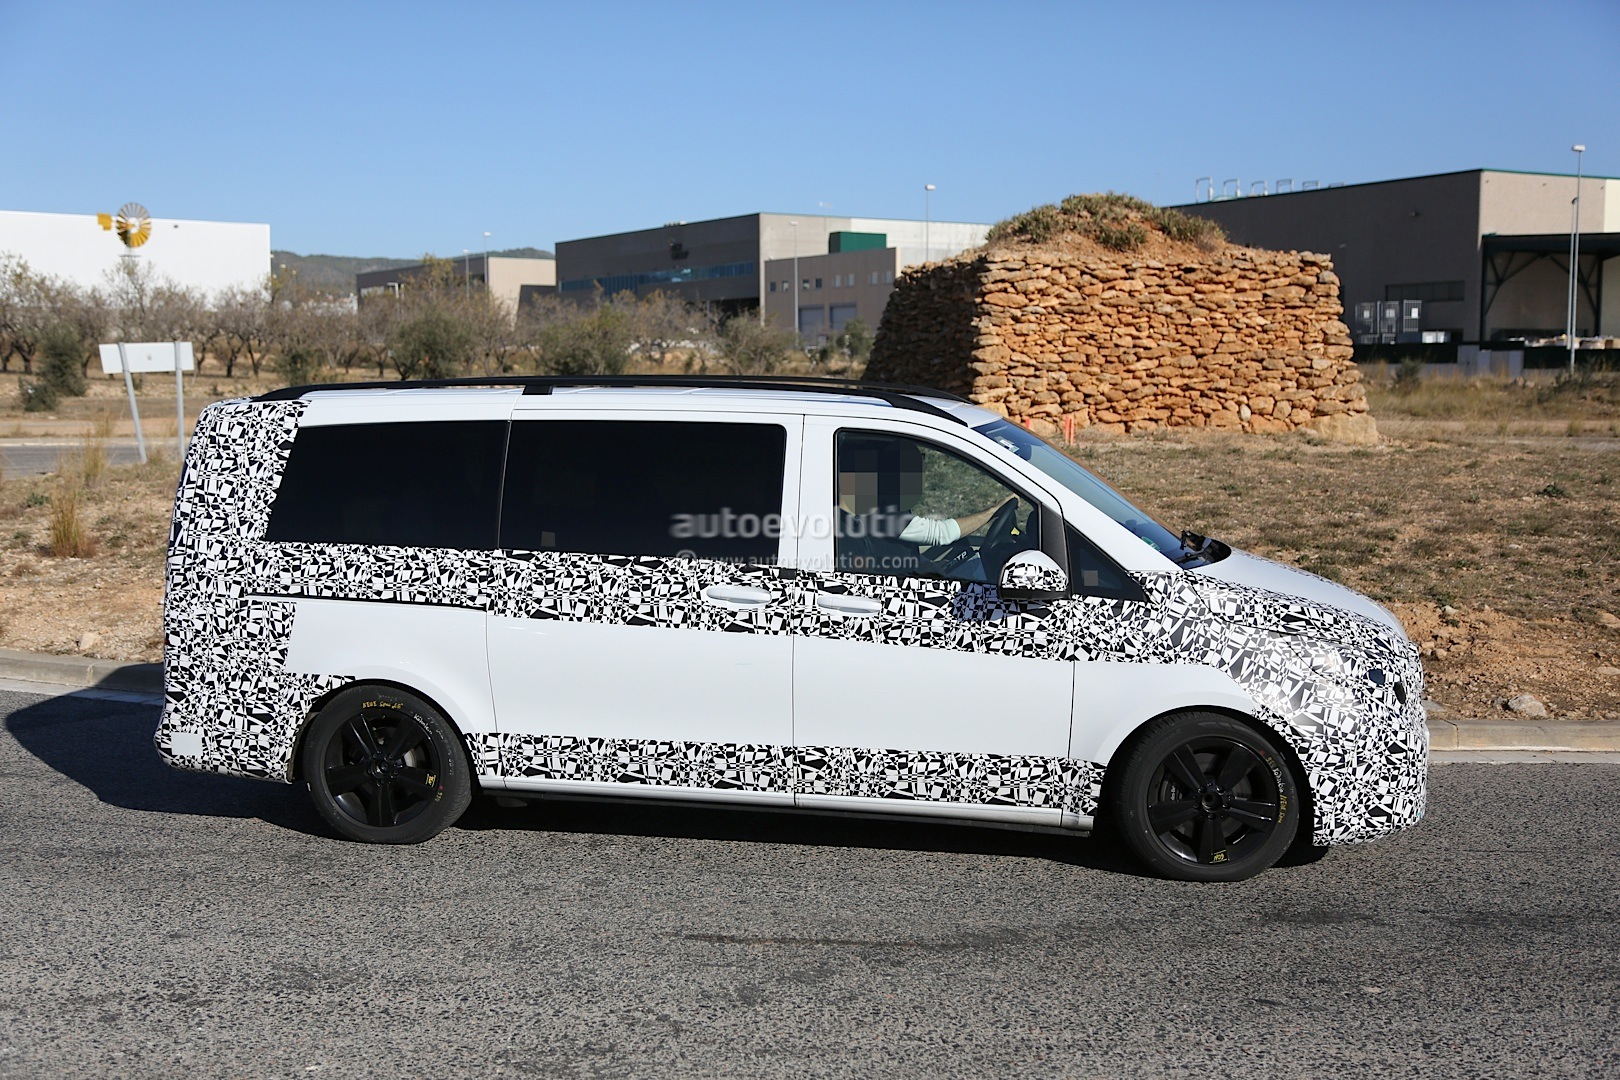 2014 - [Mercedes] Classe V/Vito - Page 4 Herd-of-2015-mercedes-benz-v-class-prototypes-caught-in-the-open-photo-gallery-1080p-11